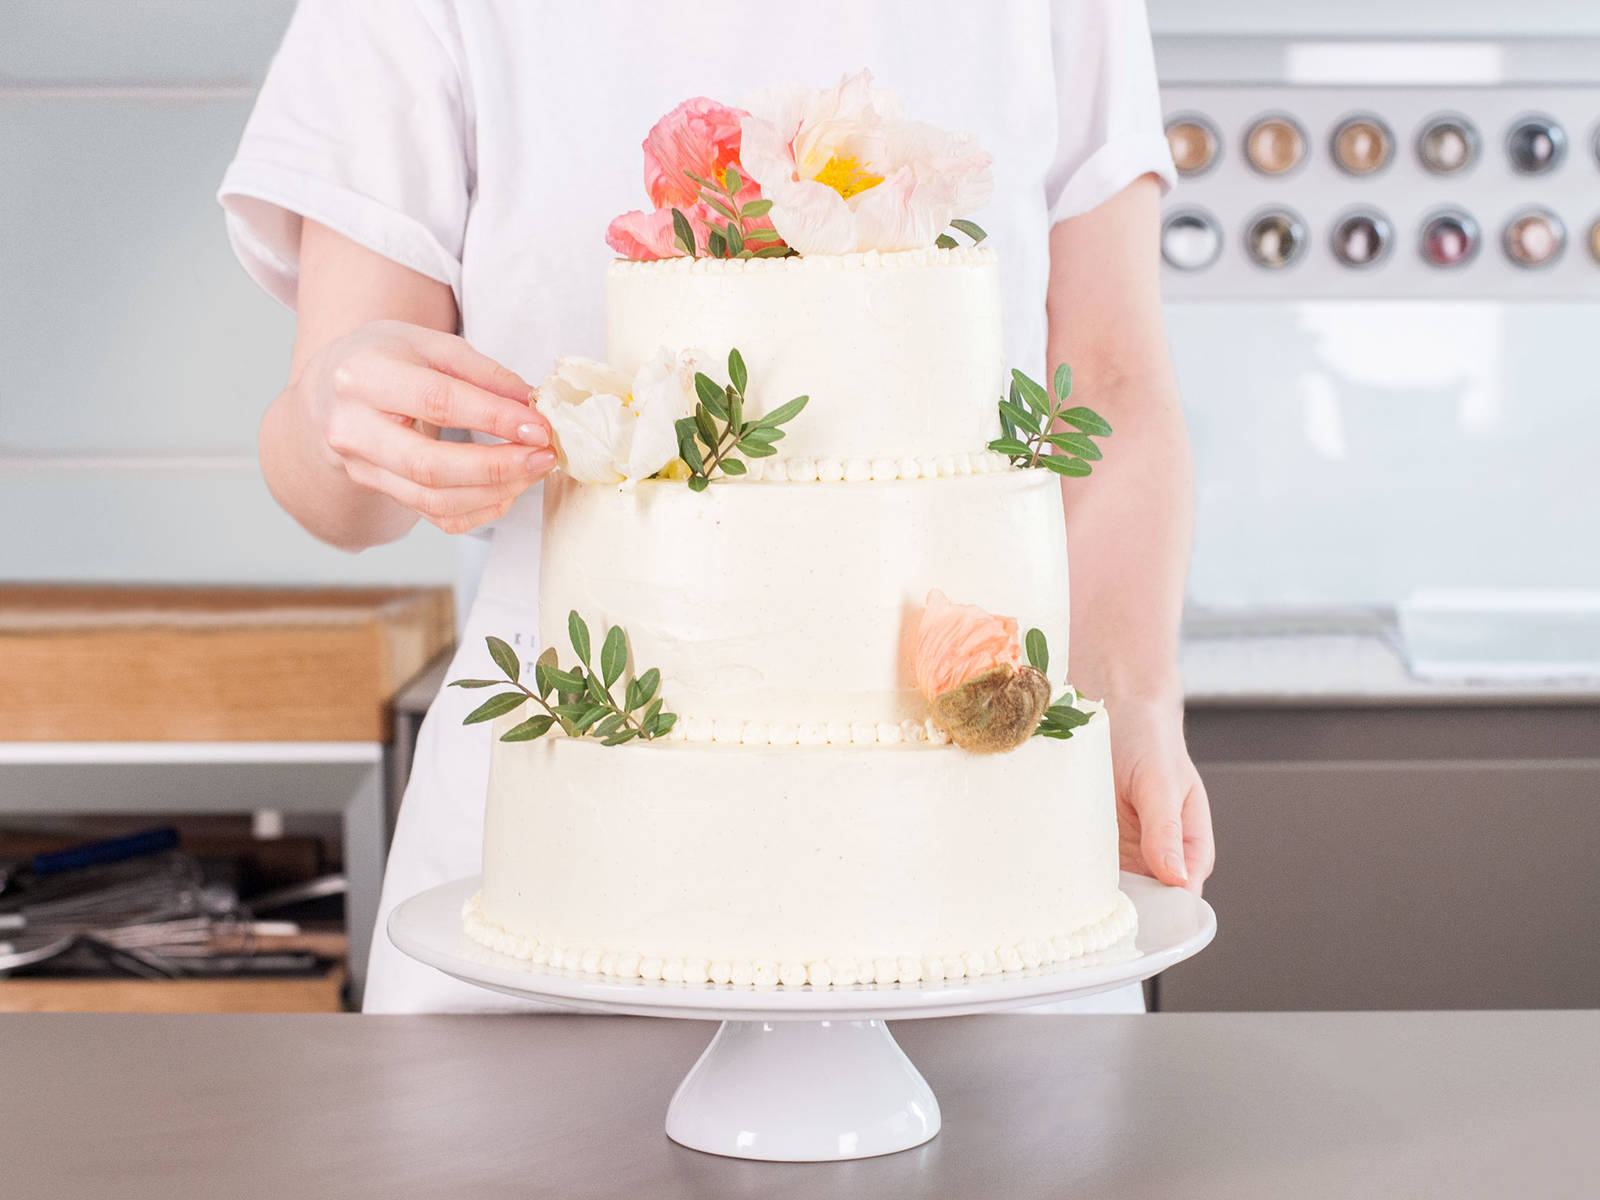 Wedding Cake Recipe Kitchen Stories - Pineapple Wedding Cake